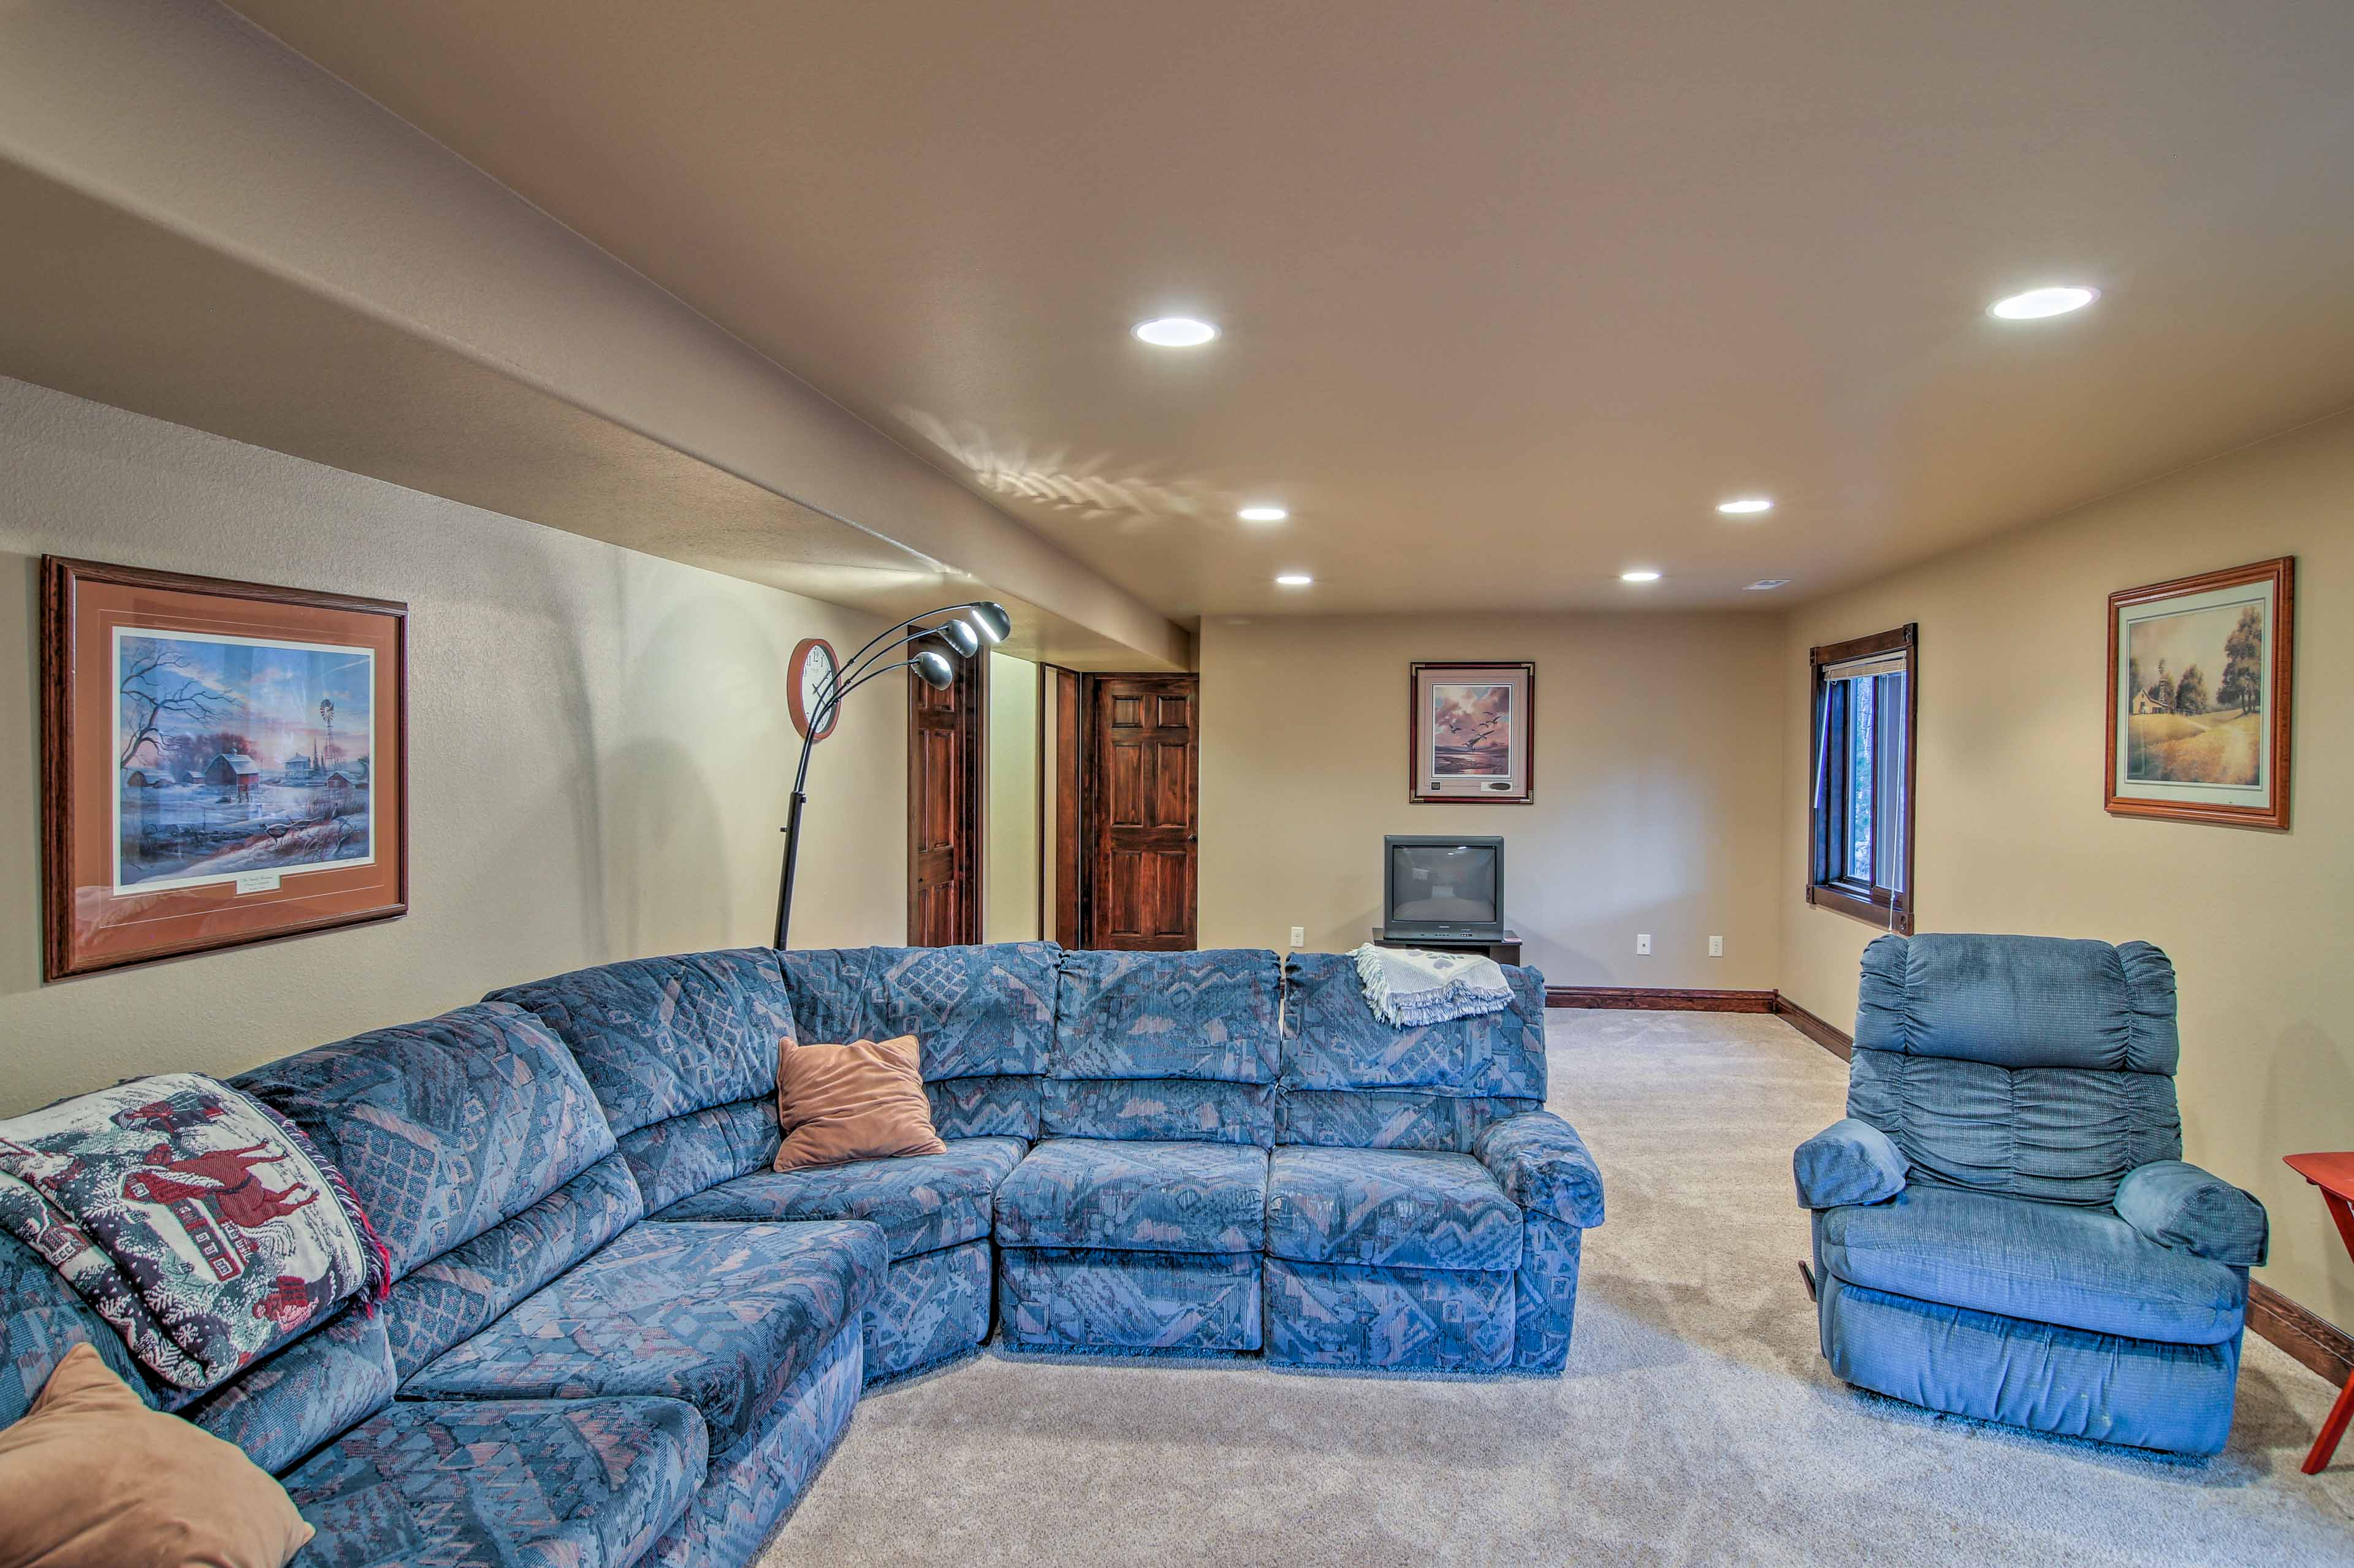 A sleeper sofa, as well as 3 air mattresses, are available to use in the game room